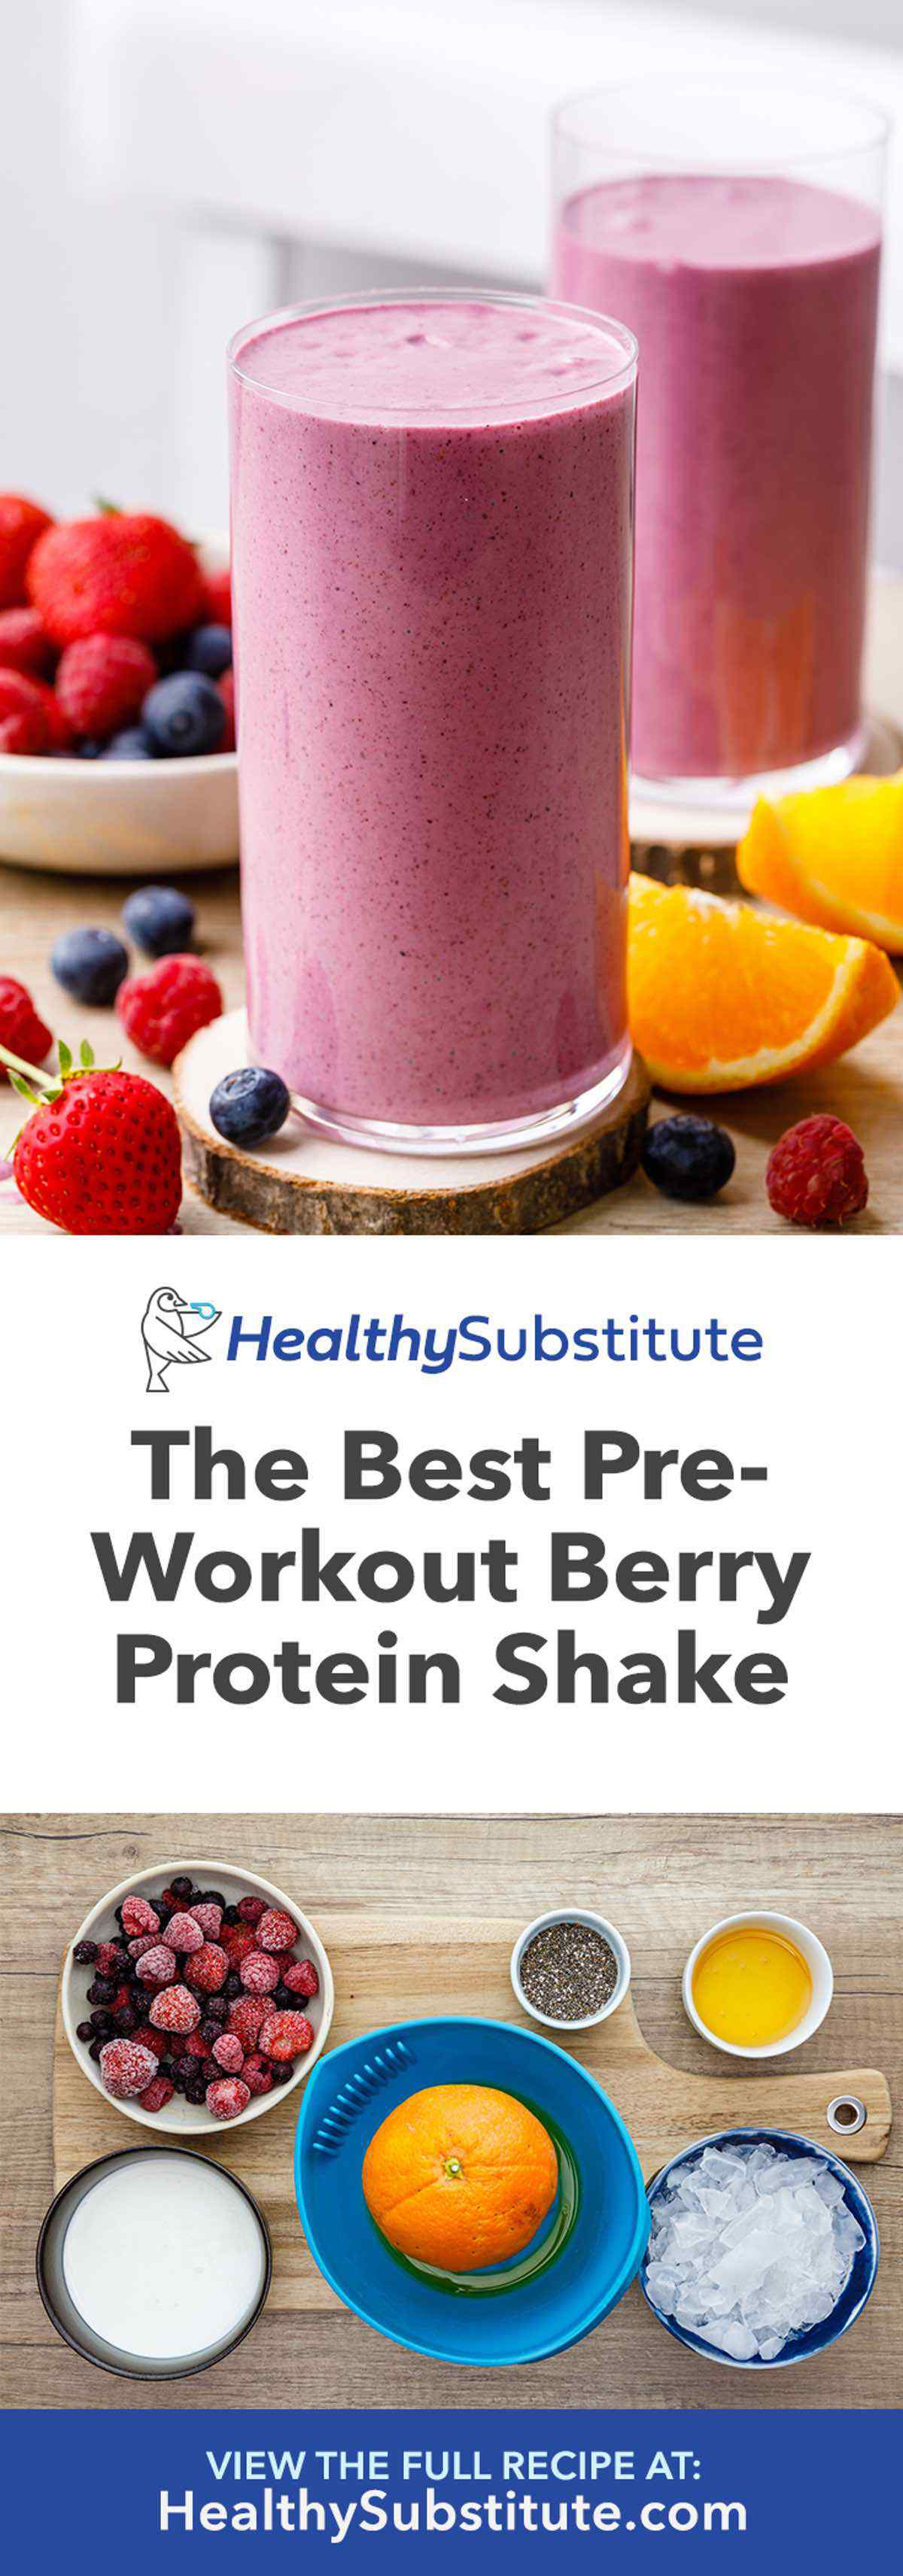 Berry Pre-Workout Protein Shake